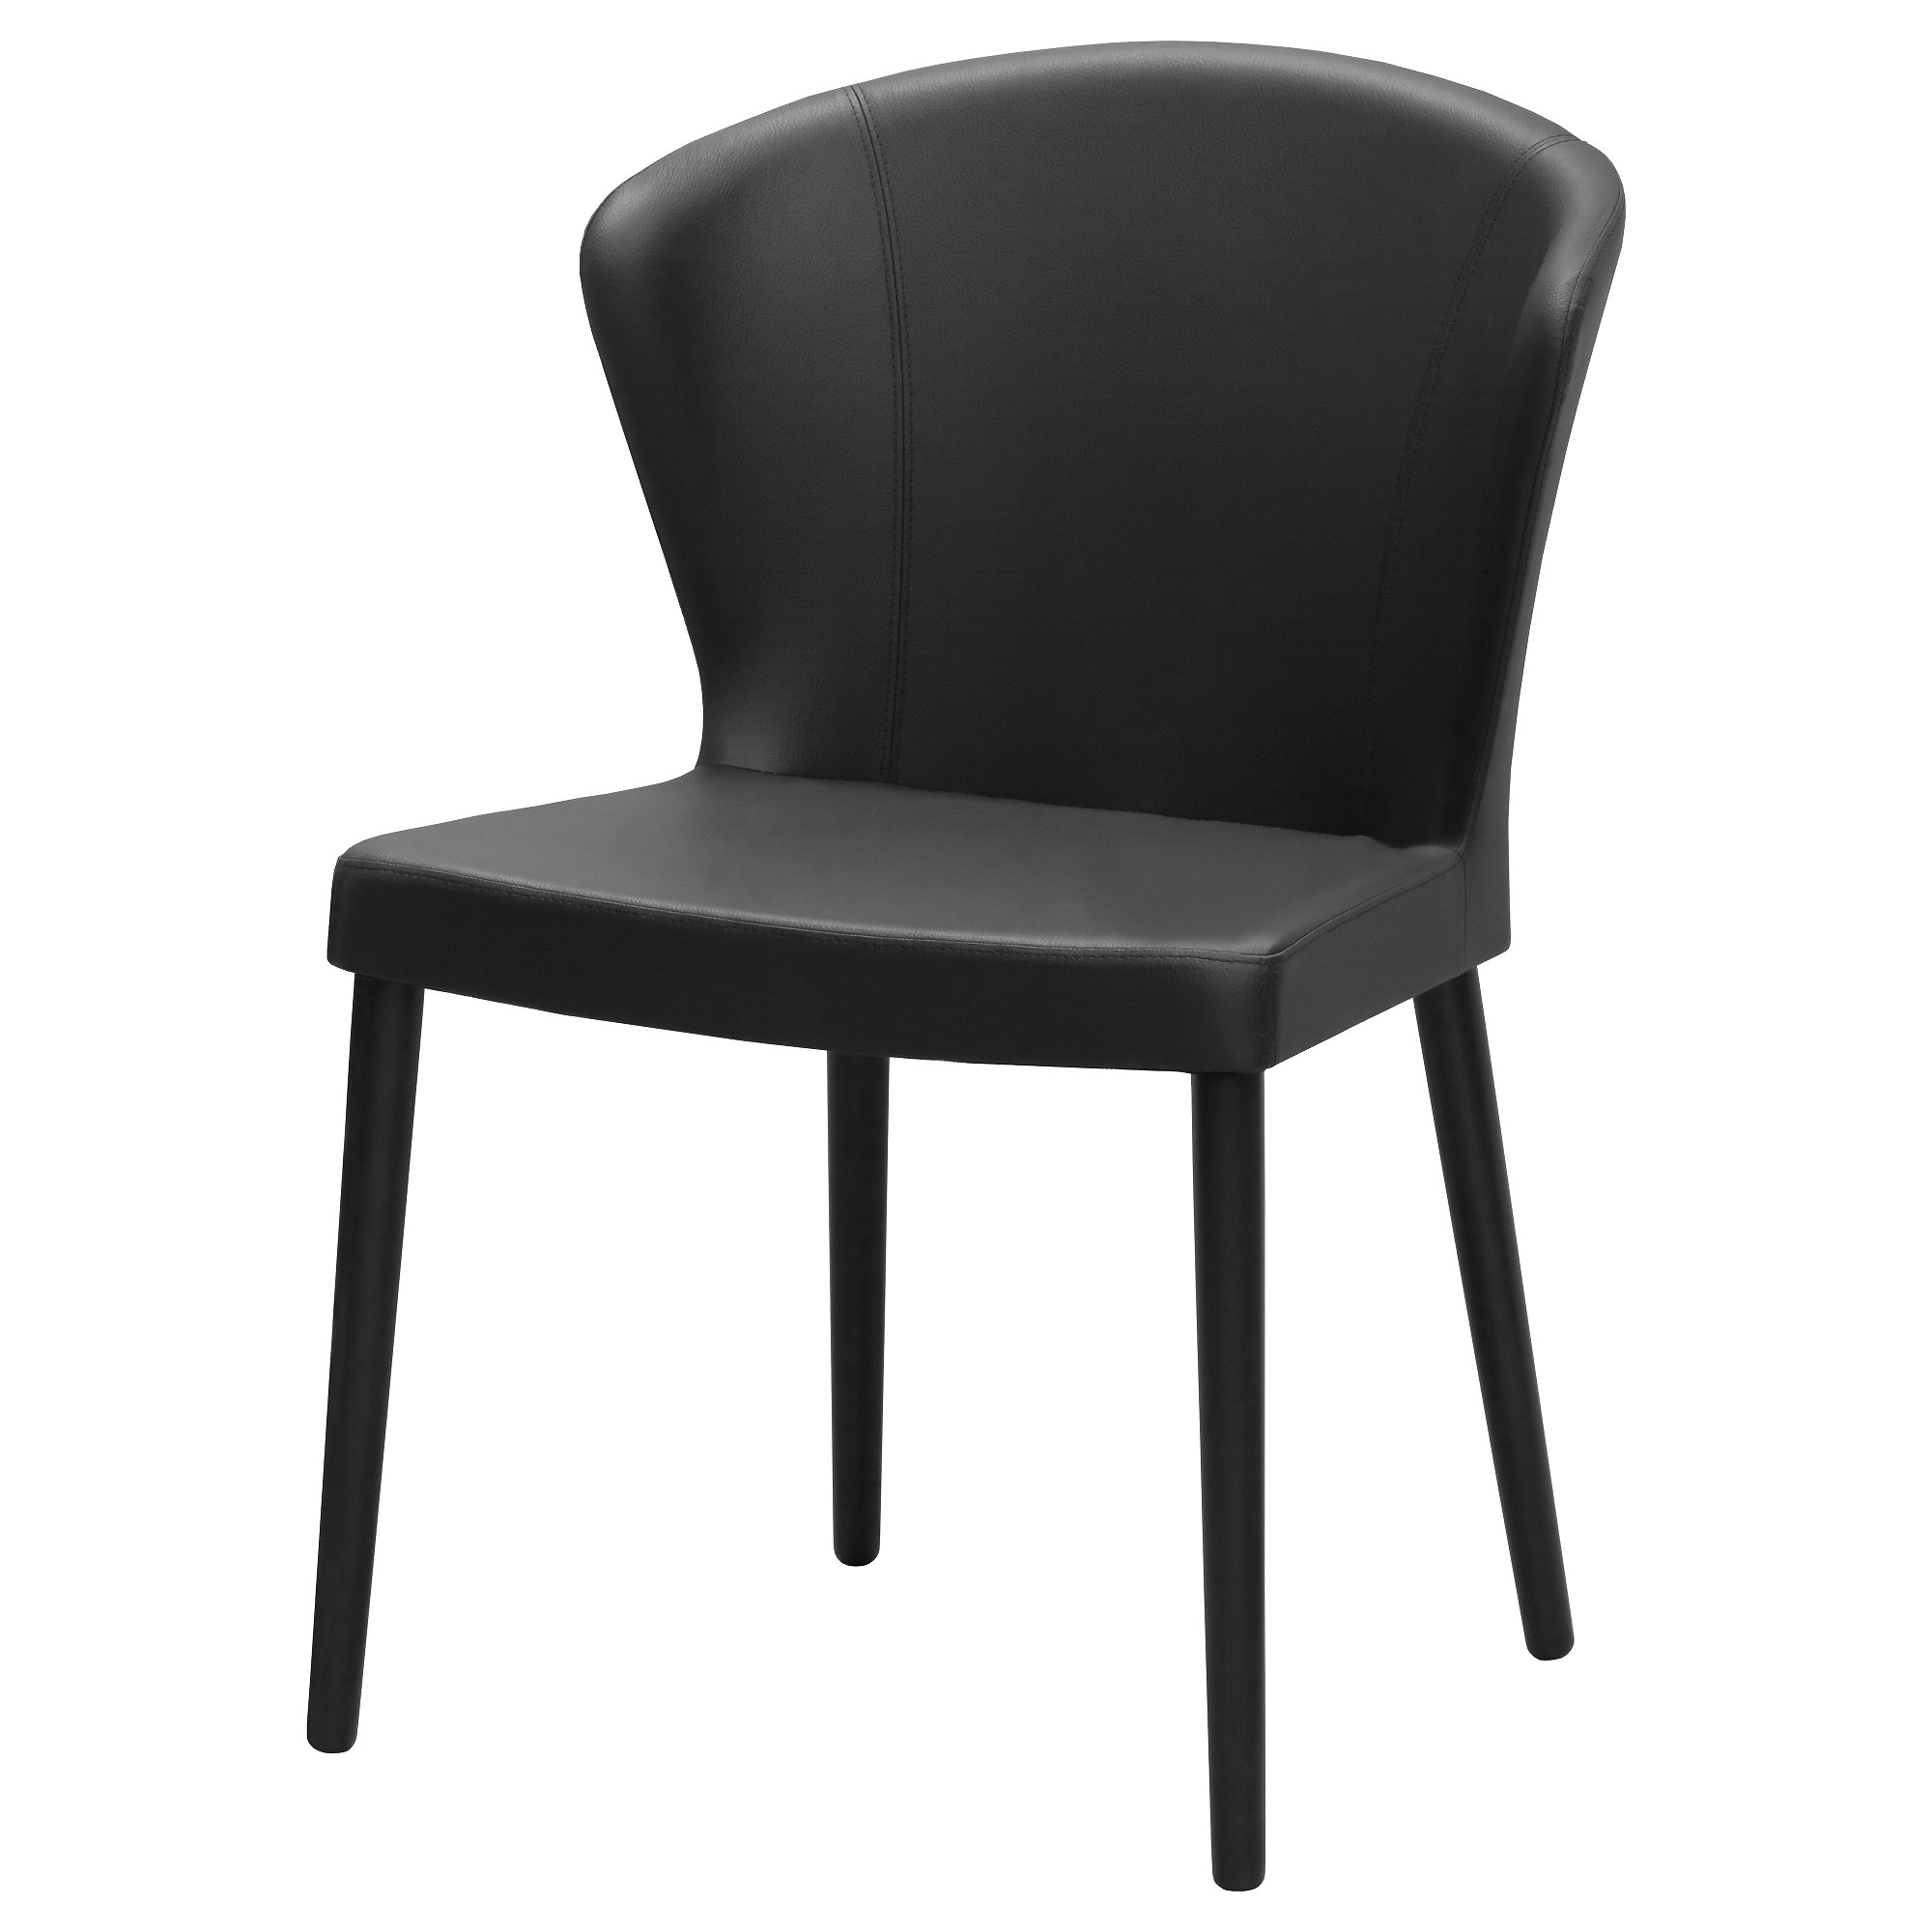 Black chair and white chair - Oddmund Chair Idhult Black Stained Idhult Black Width 22 Depth 18